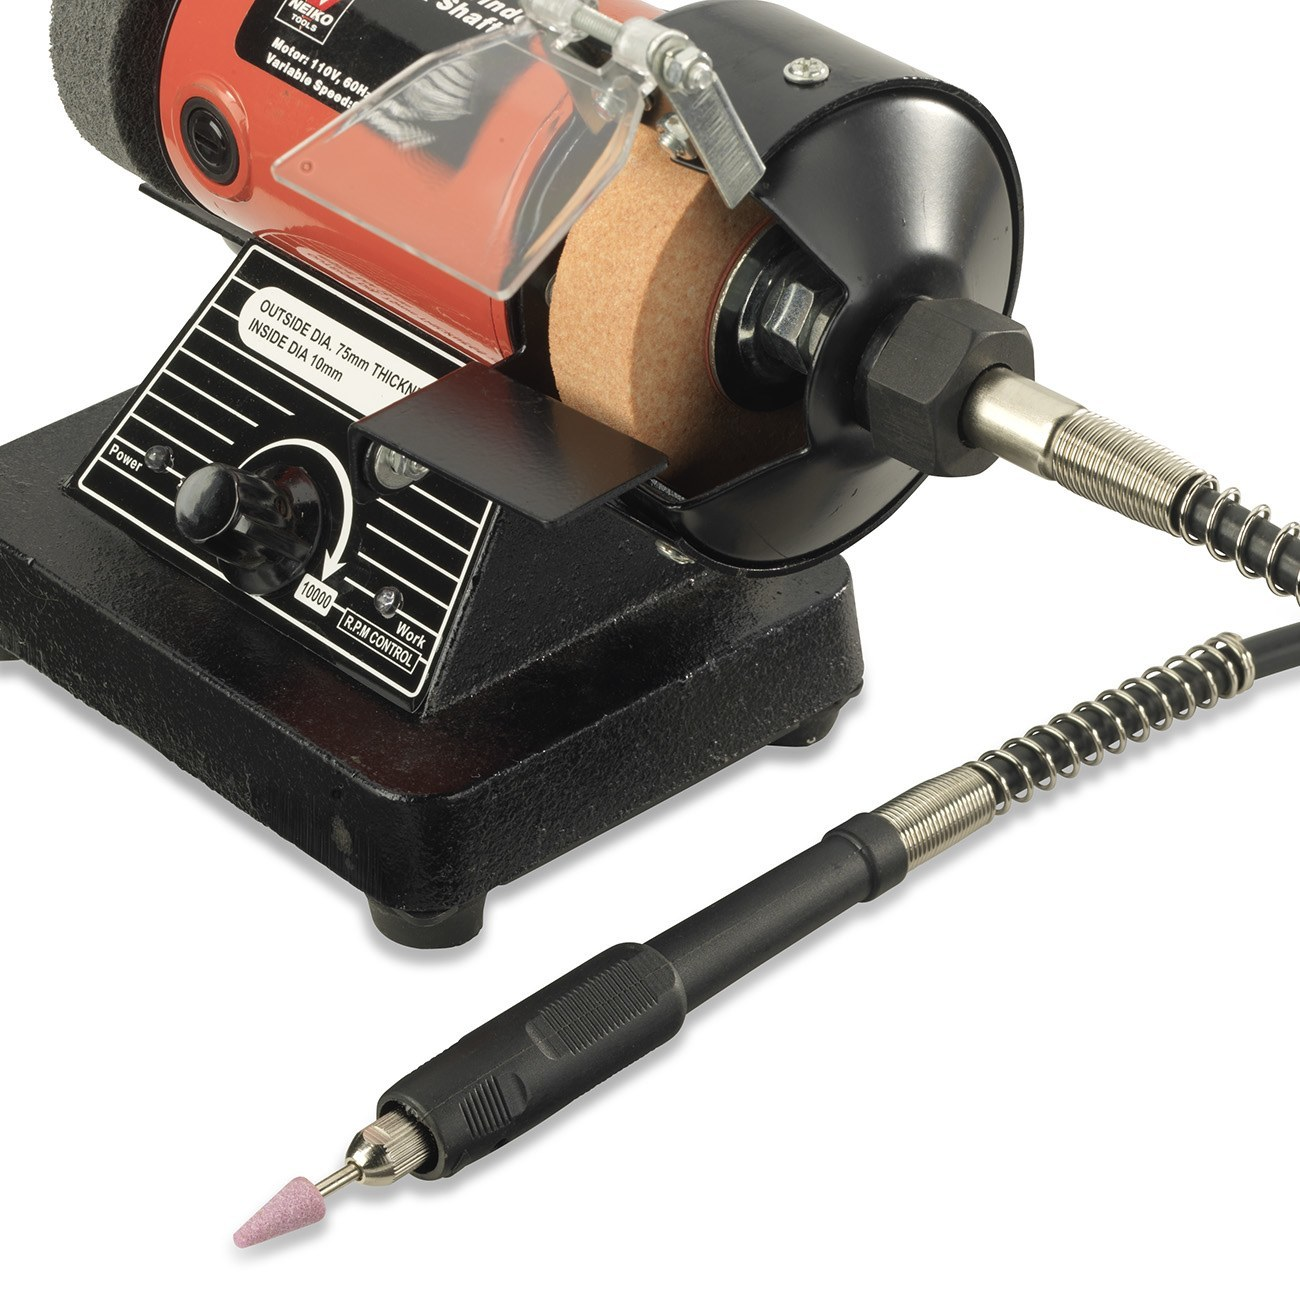 Mini Bench Grinder Rotary Flexible Shaft Polisher Die Carving 10 000 Rpm Ebay